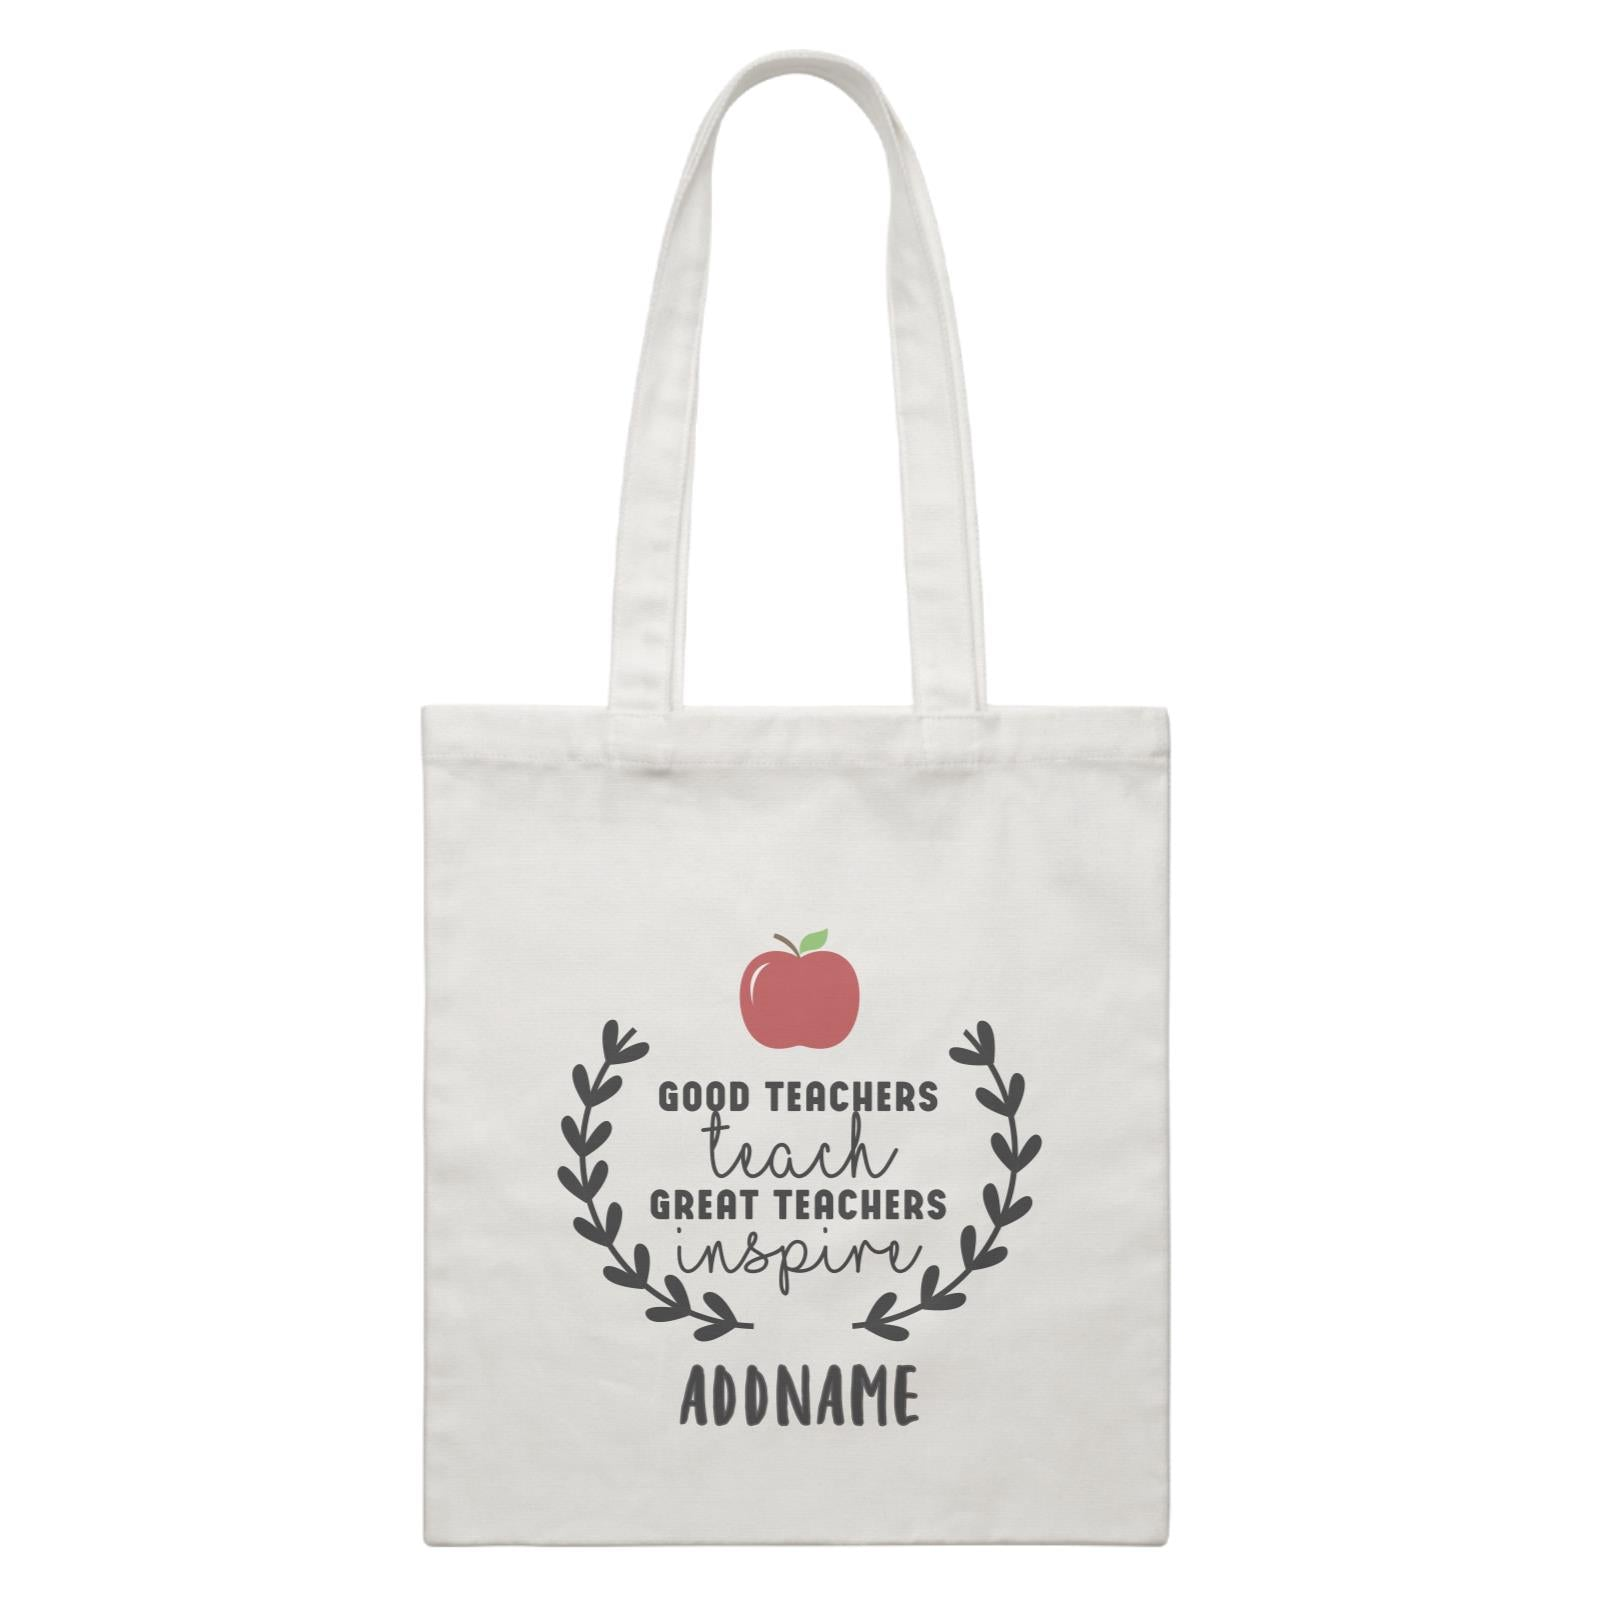 Great Teachers Good Teachers Teach Great Teachers Inspire Addname White Canvas Bag